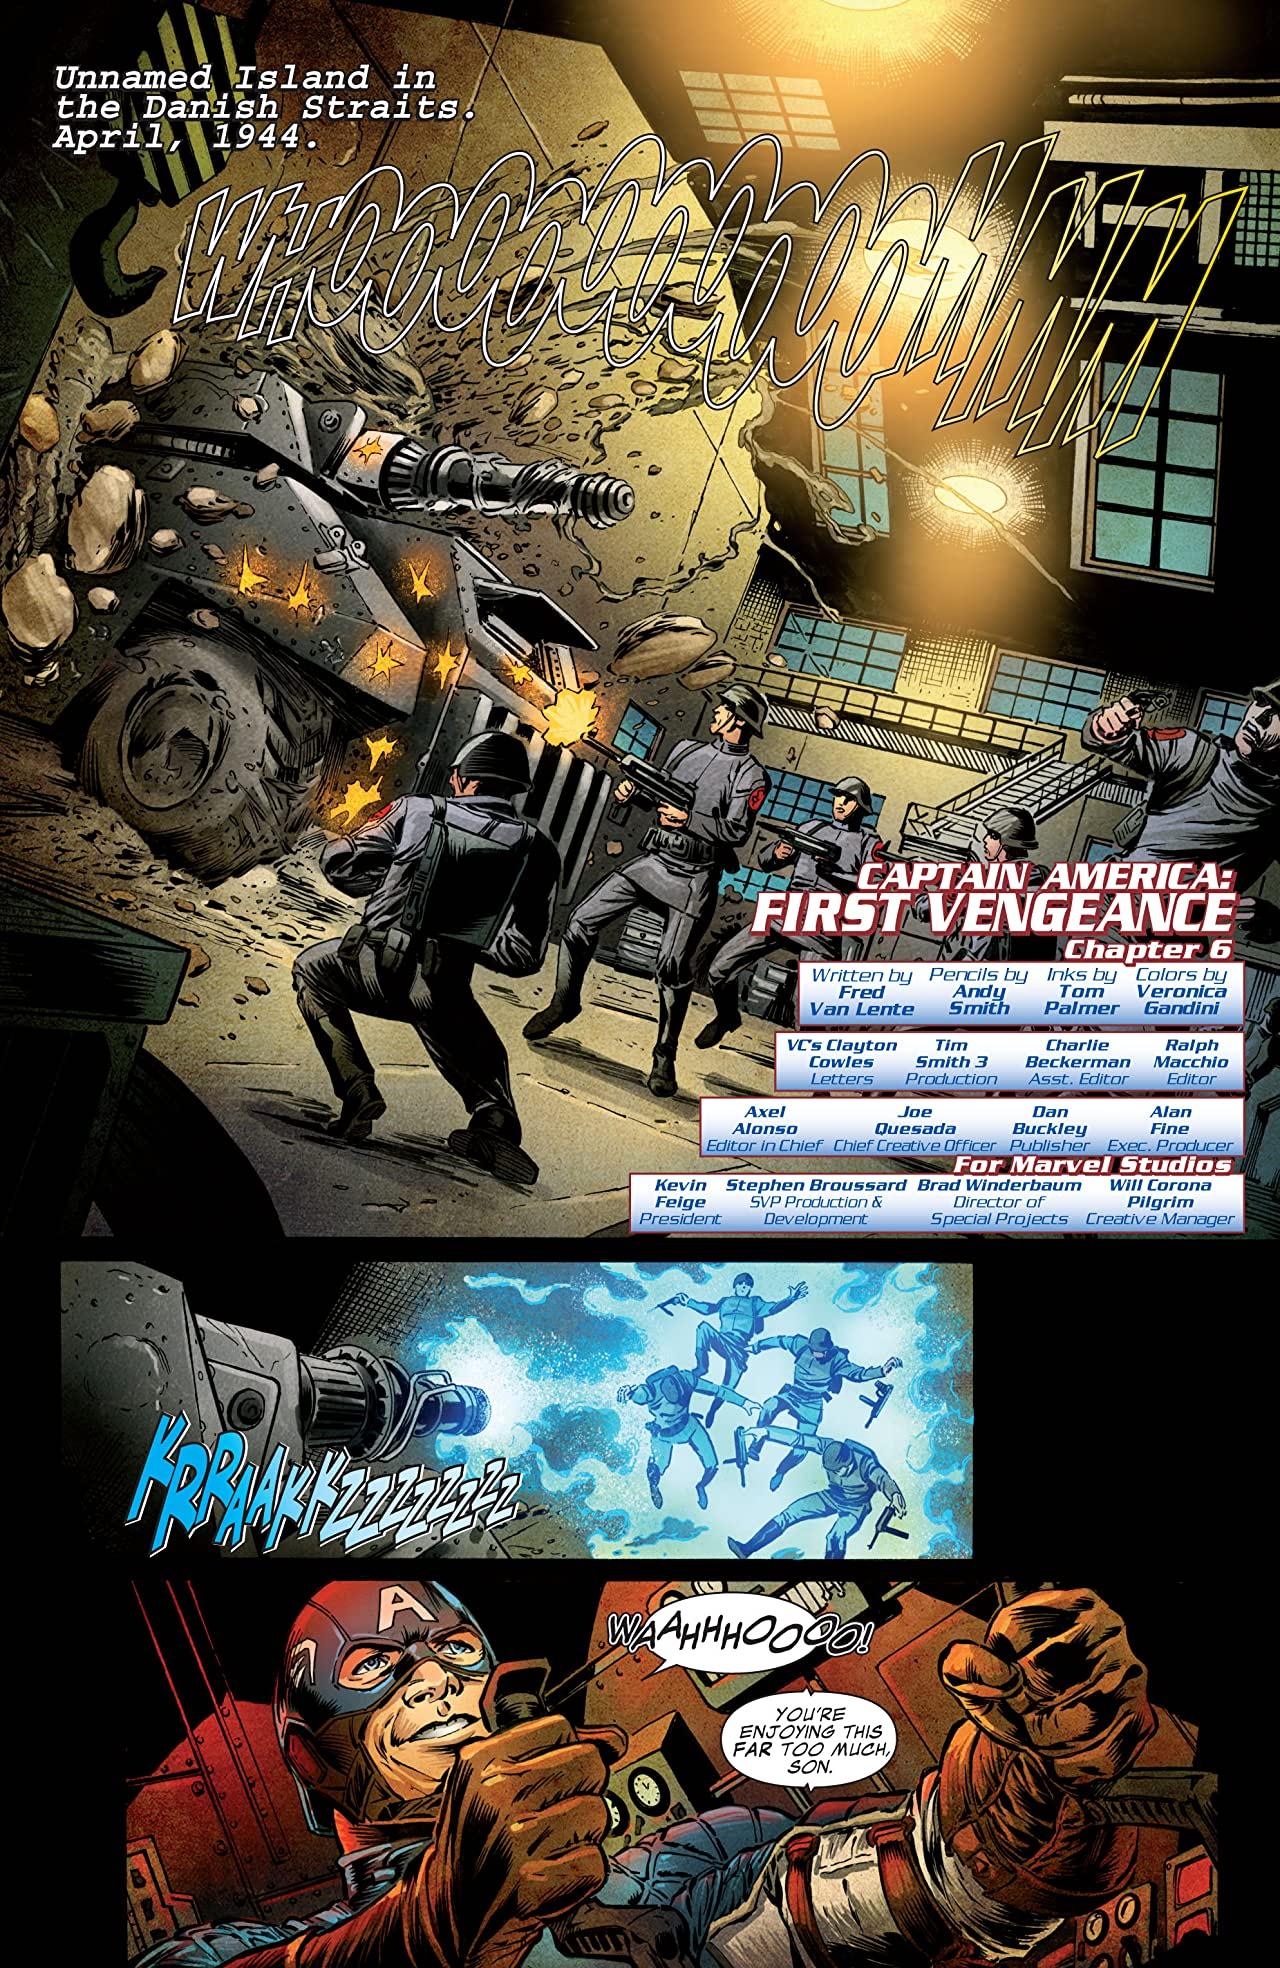 Captain America: The First Avenger #6: First Vengeance